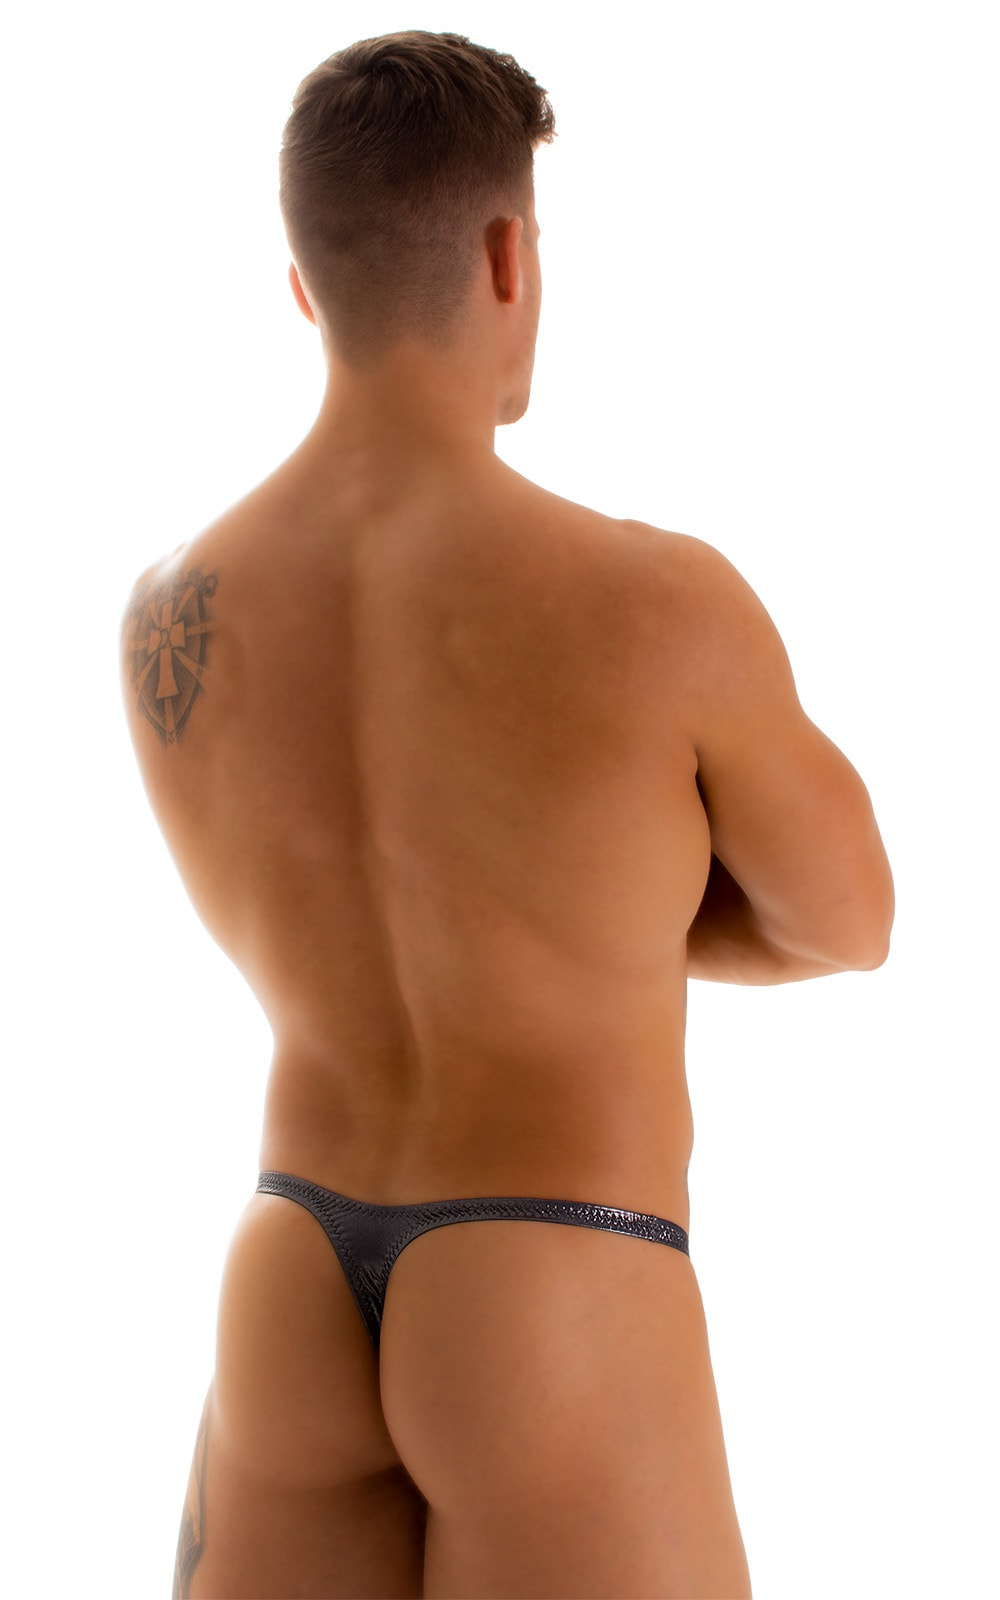 Stuffit Pouch Thong in Black Ice 2